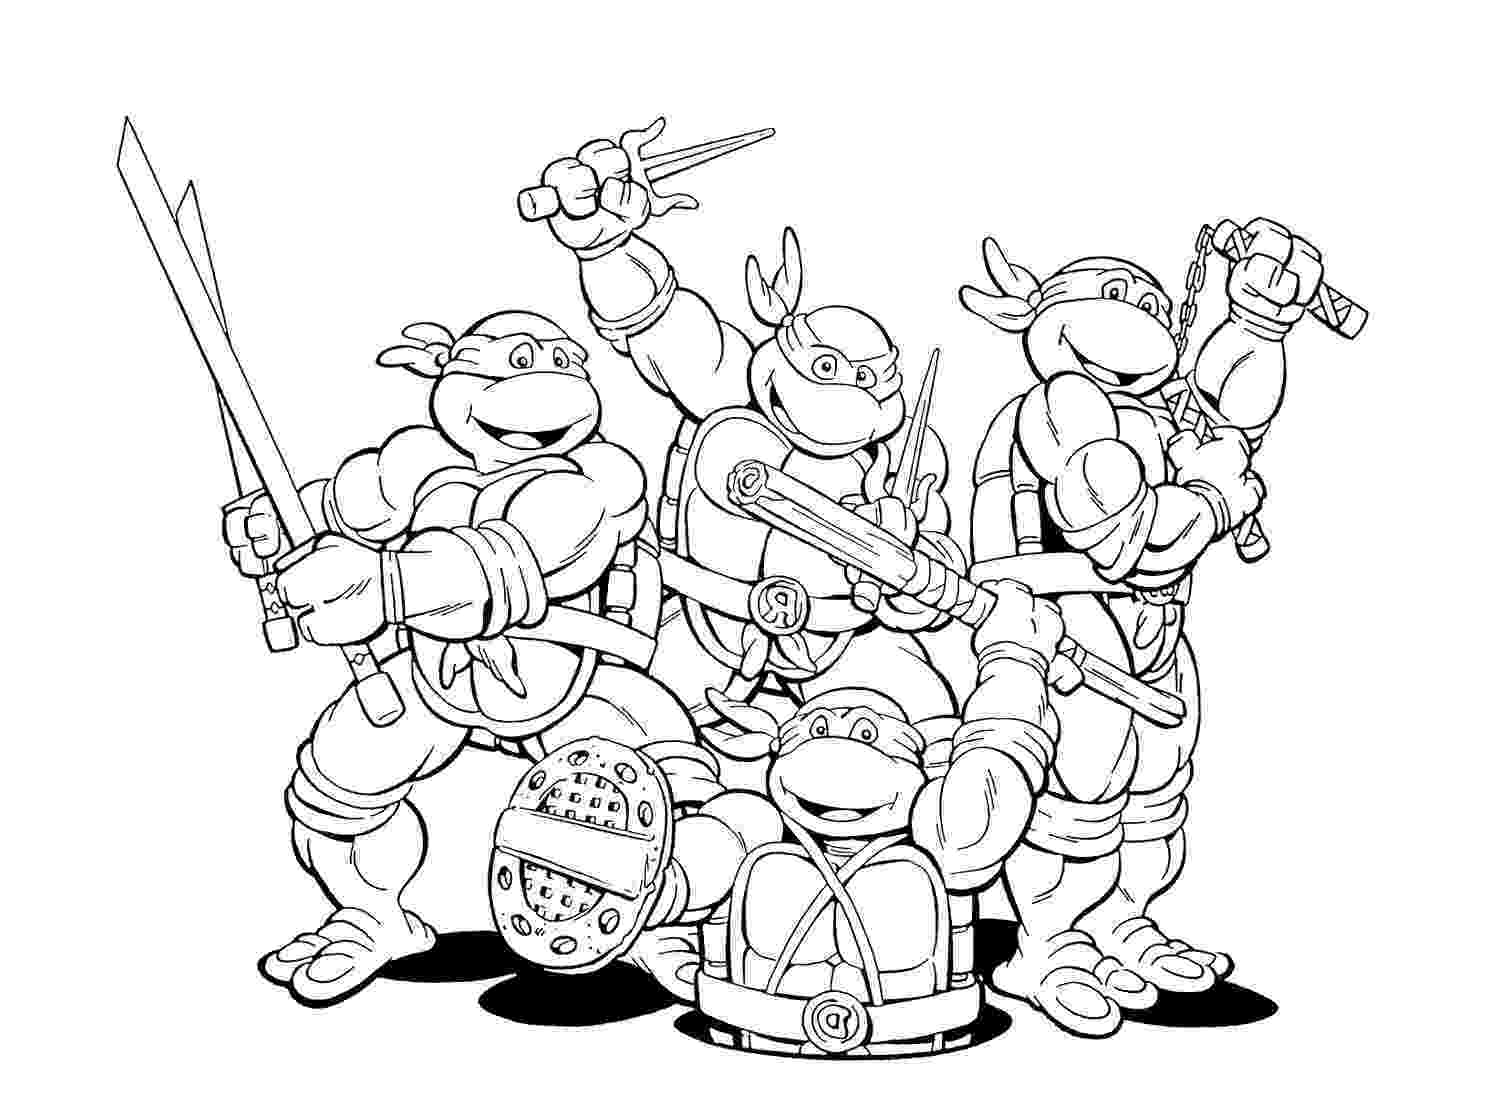 free tmnt coloring pages teenage mutant ninja turtles coloring pages ninja turtle pages free coloring tmnt